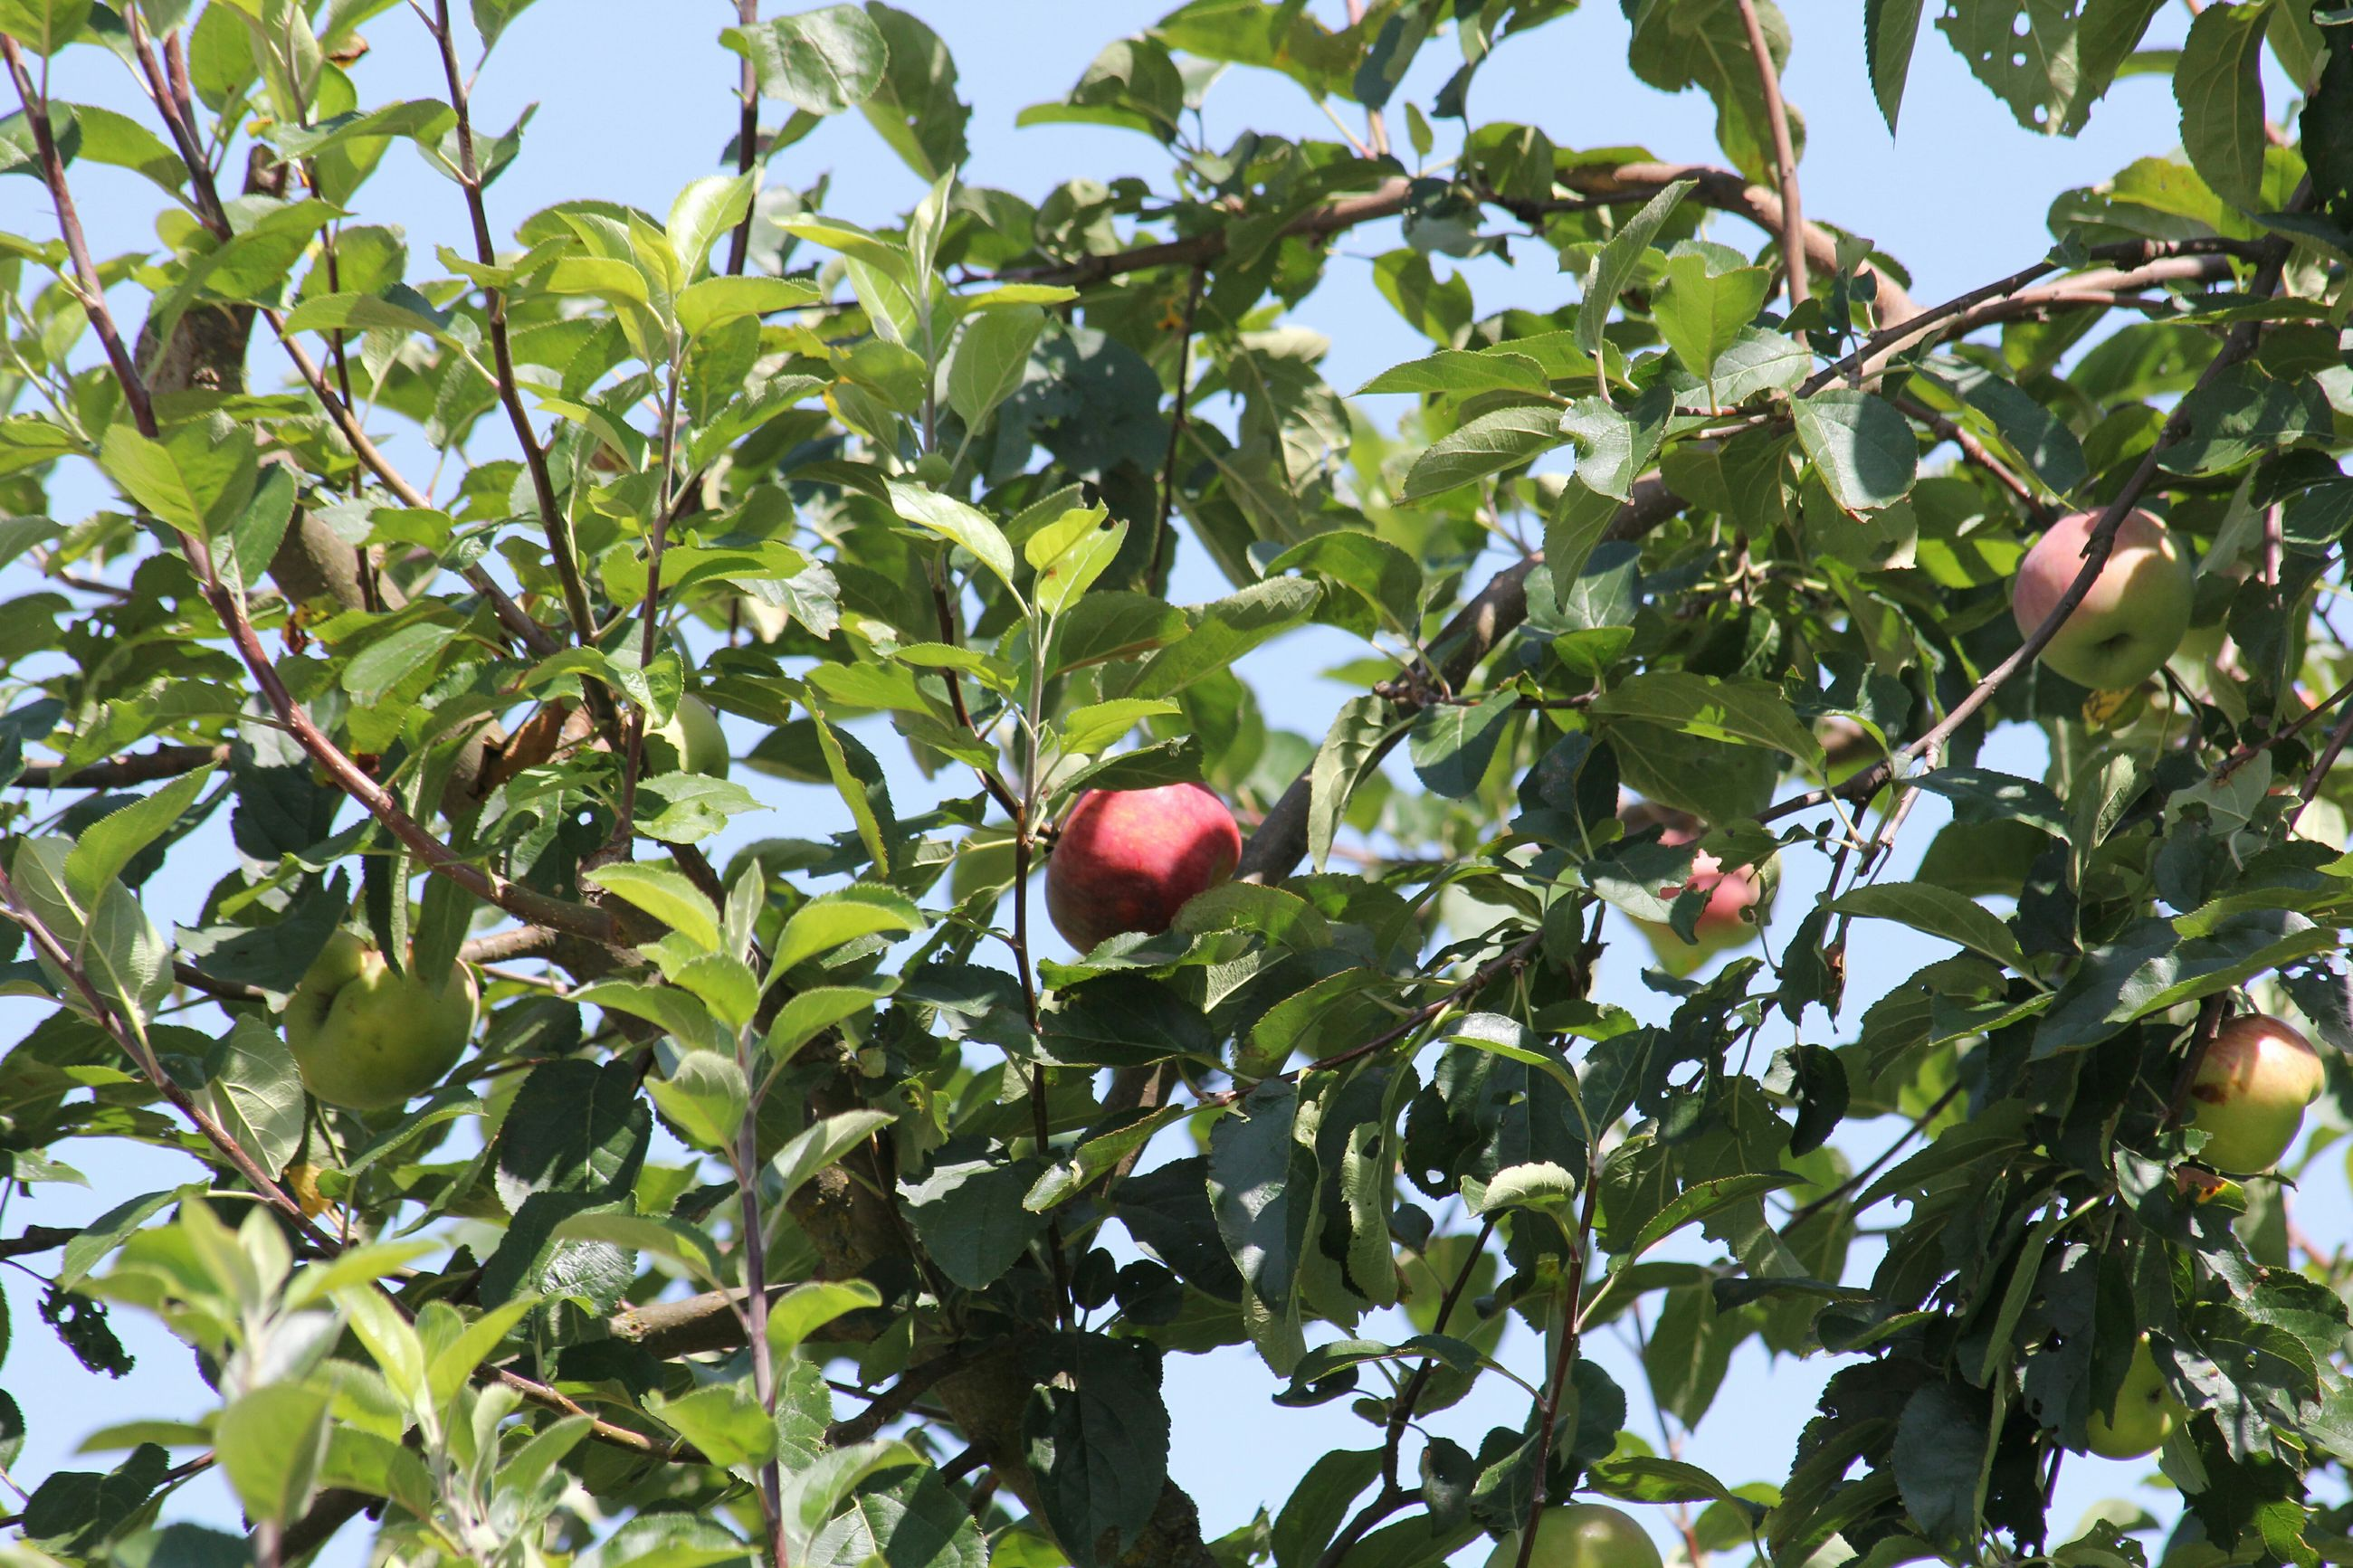 fruit, food and drink, tree, leaf, food, branch, growth, healthy eating, low angle view, green color, freshness, ripe, nature, hanging, day, close-up, red, outdoors, apple - fruit, no people